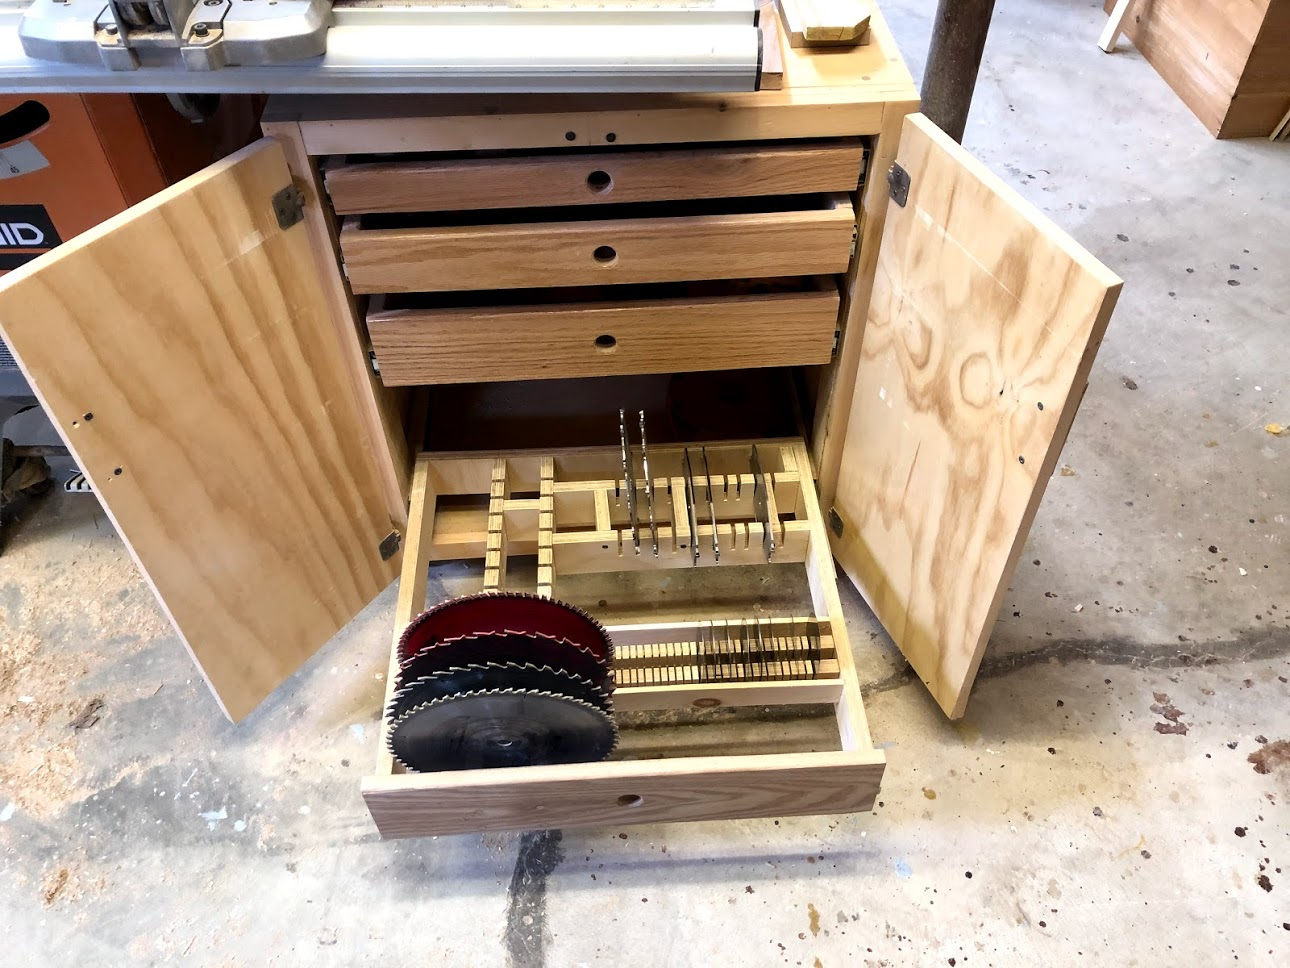 Here you can see my tablesaw accessories cart which contains all my saw blades and dado stack parts, if you would like to see more on that project  click here.